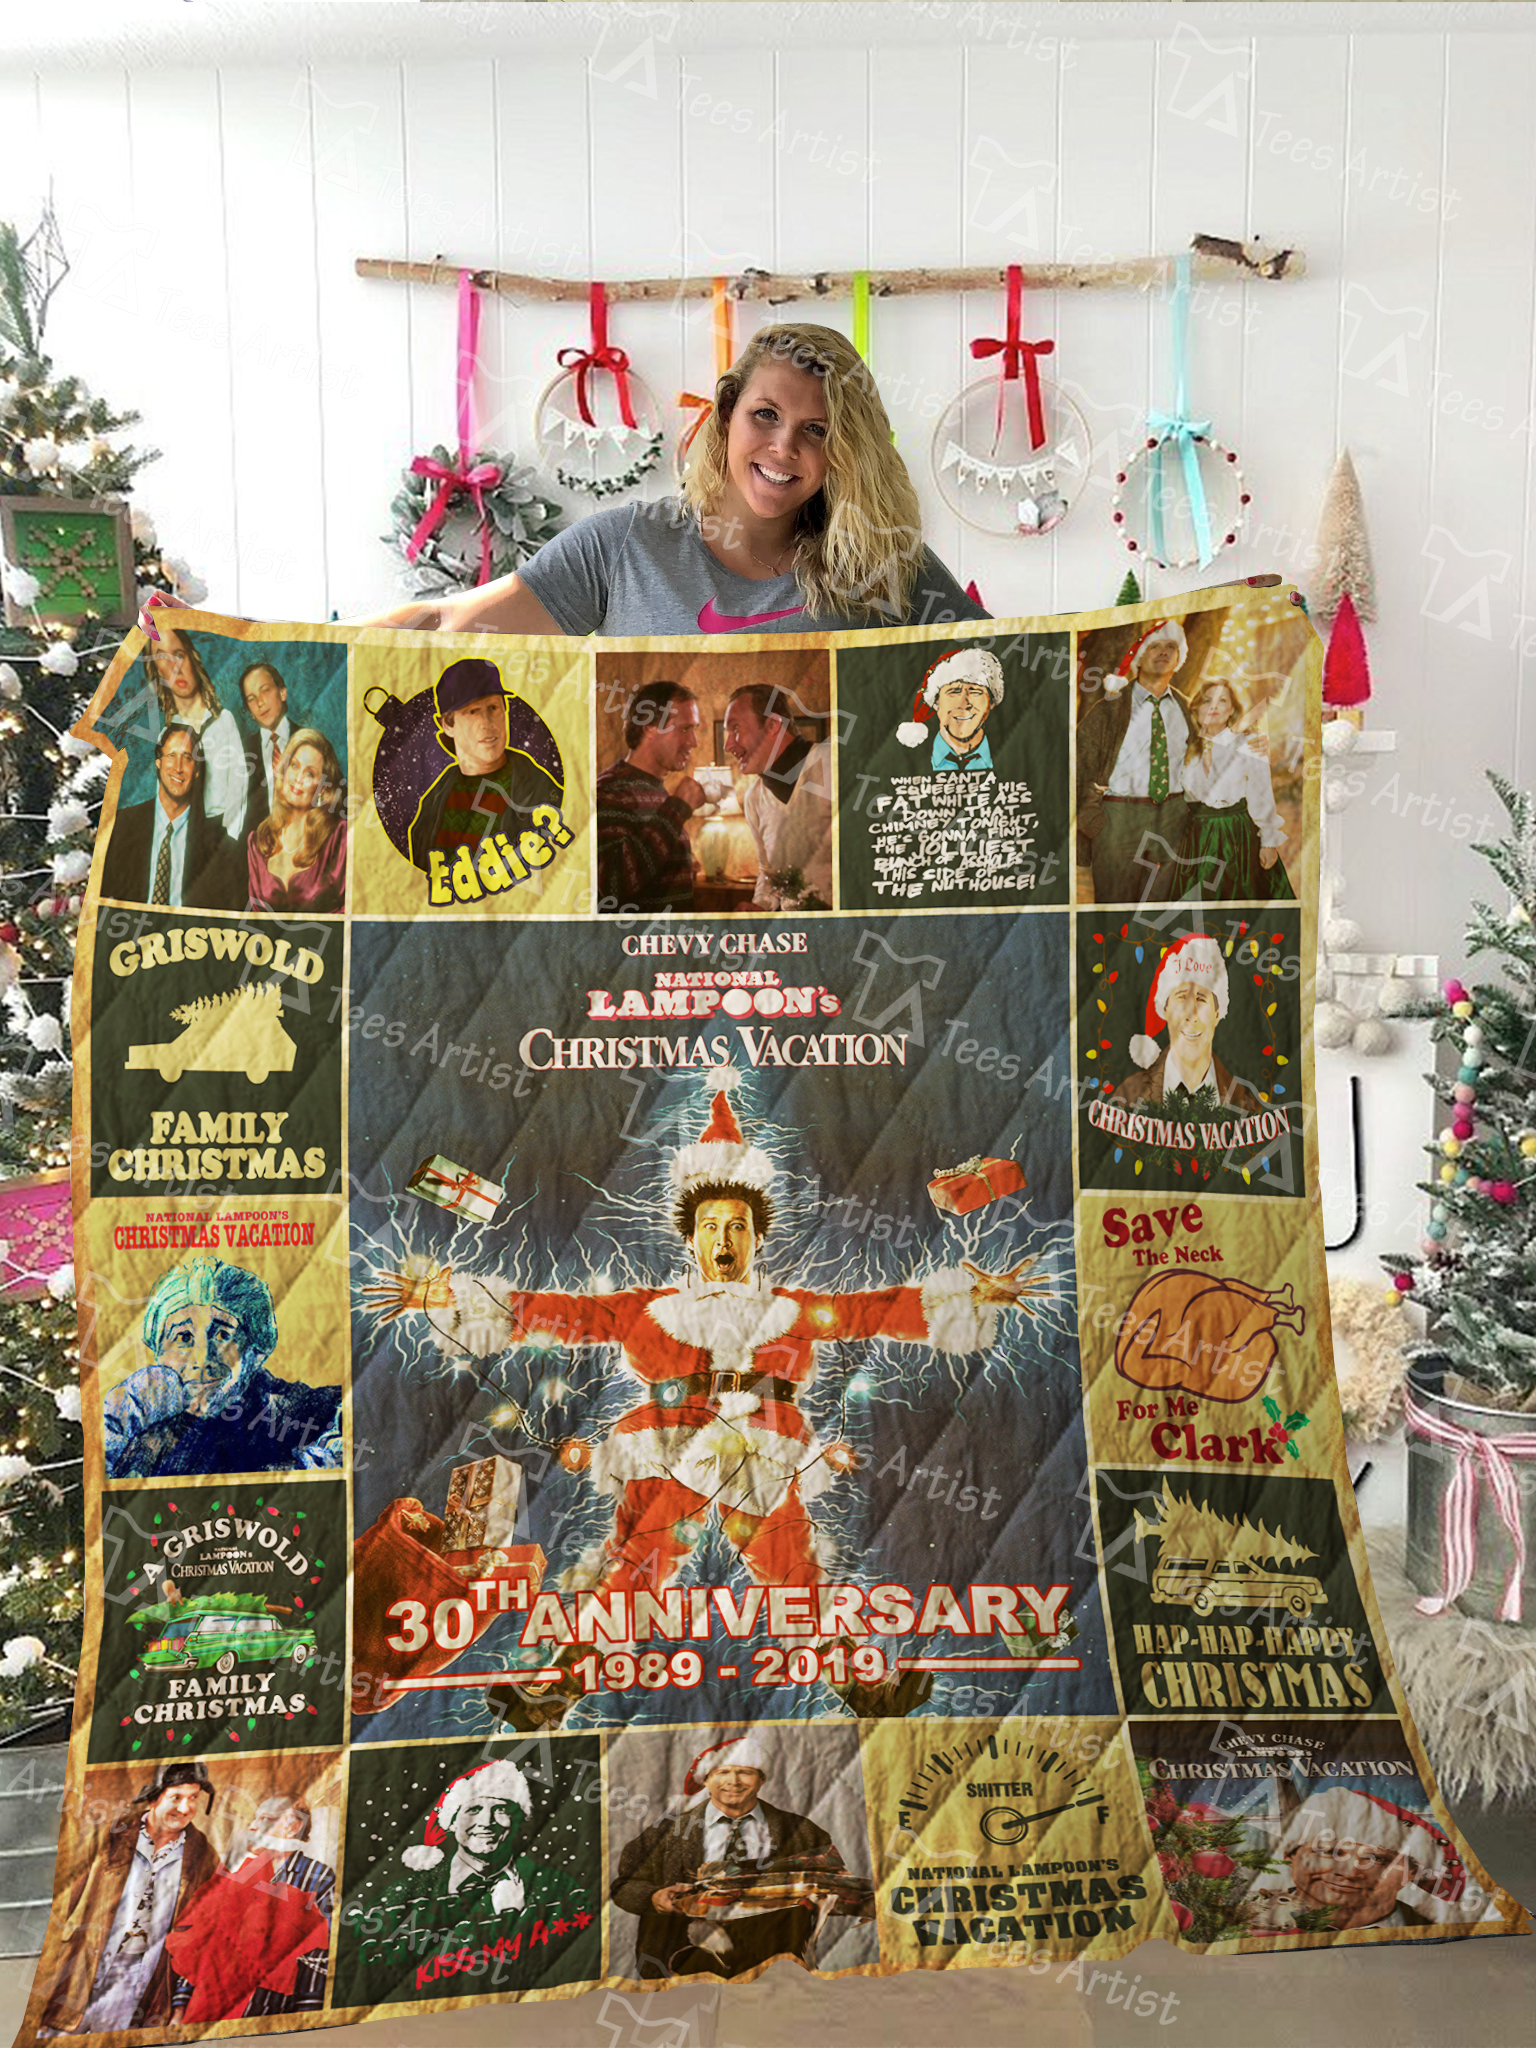 National lampoon's christmas vacation 30th anniversary quilt 4